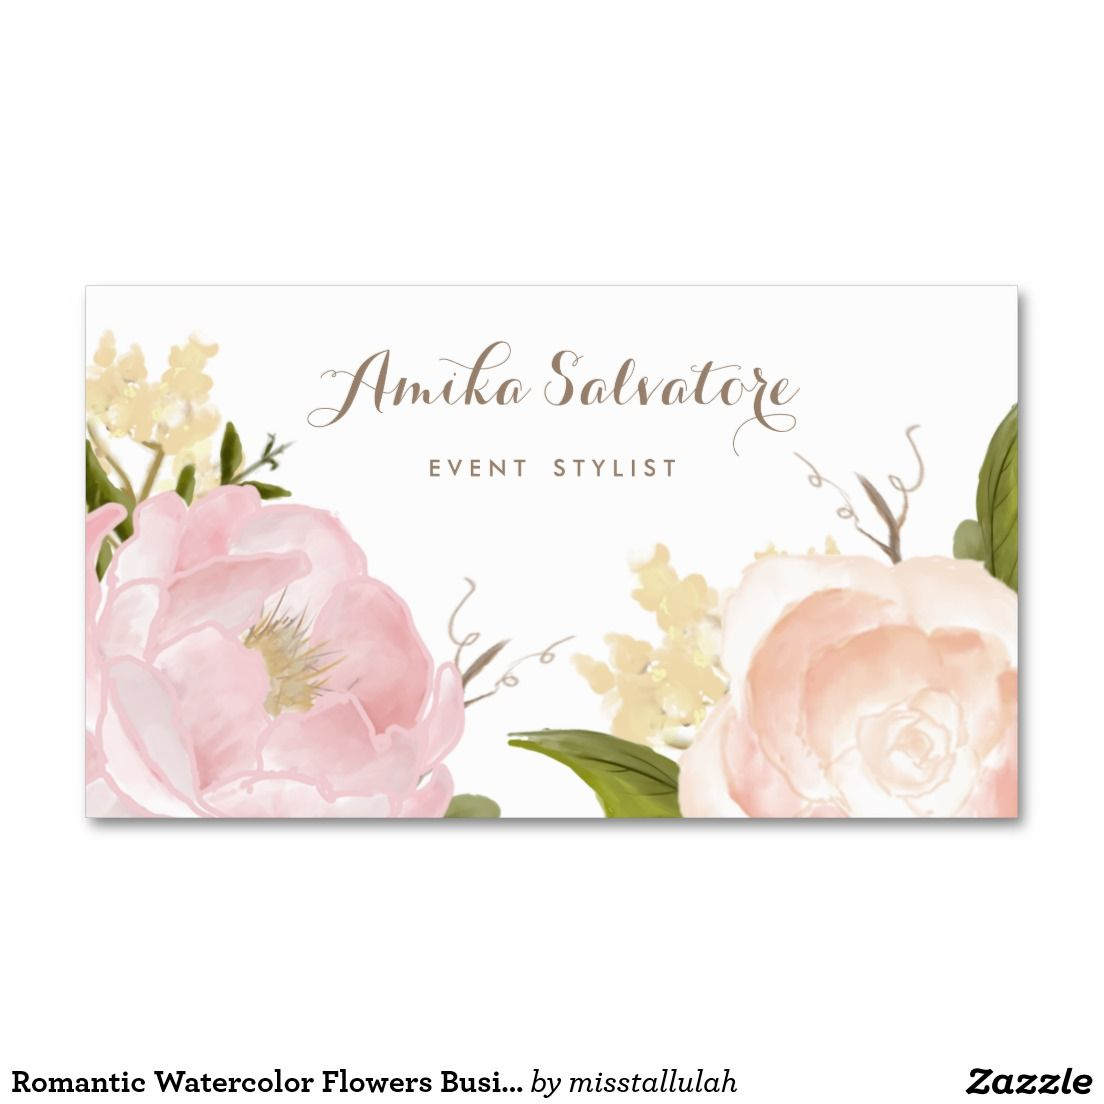 Romantic Watercolor Flowers Business Card | Chic Business Cards ...